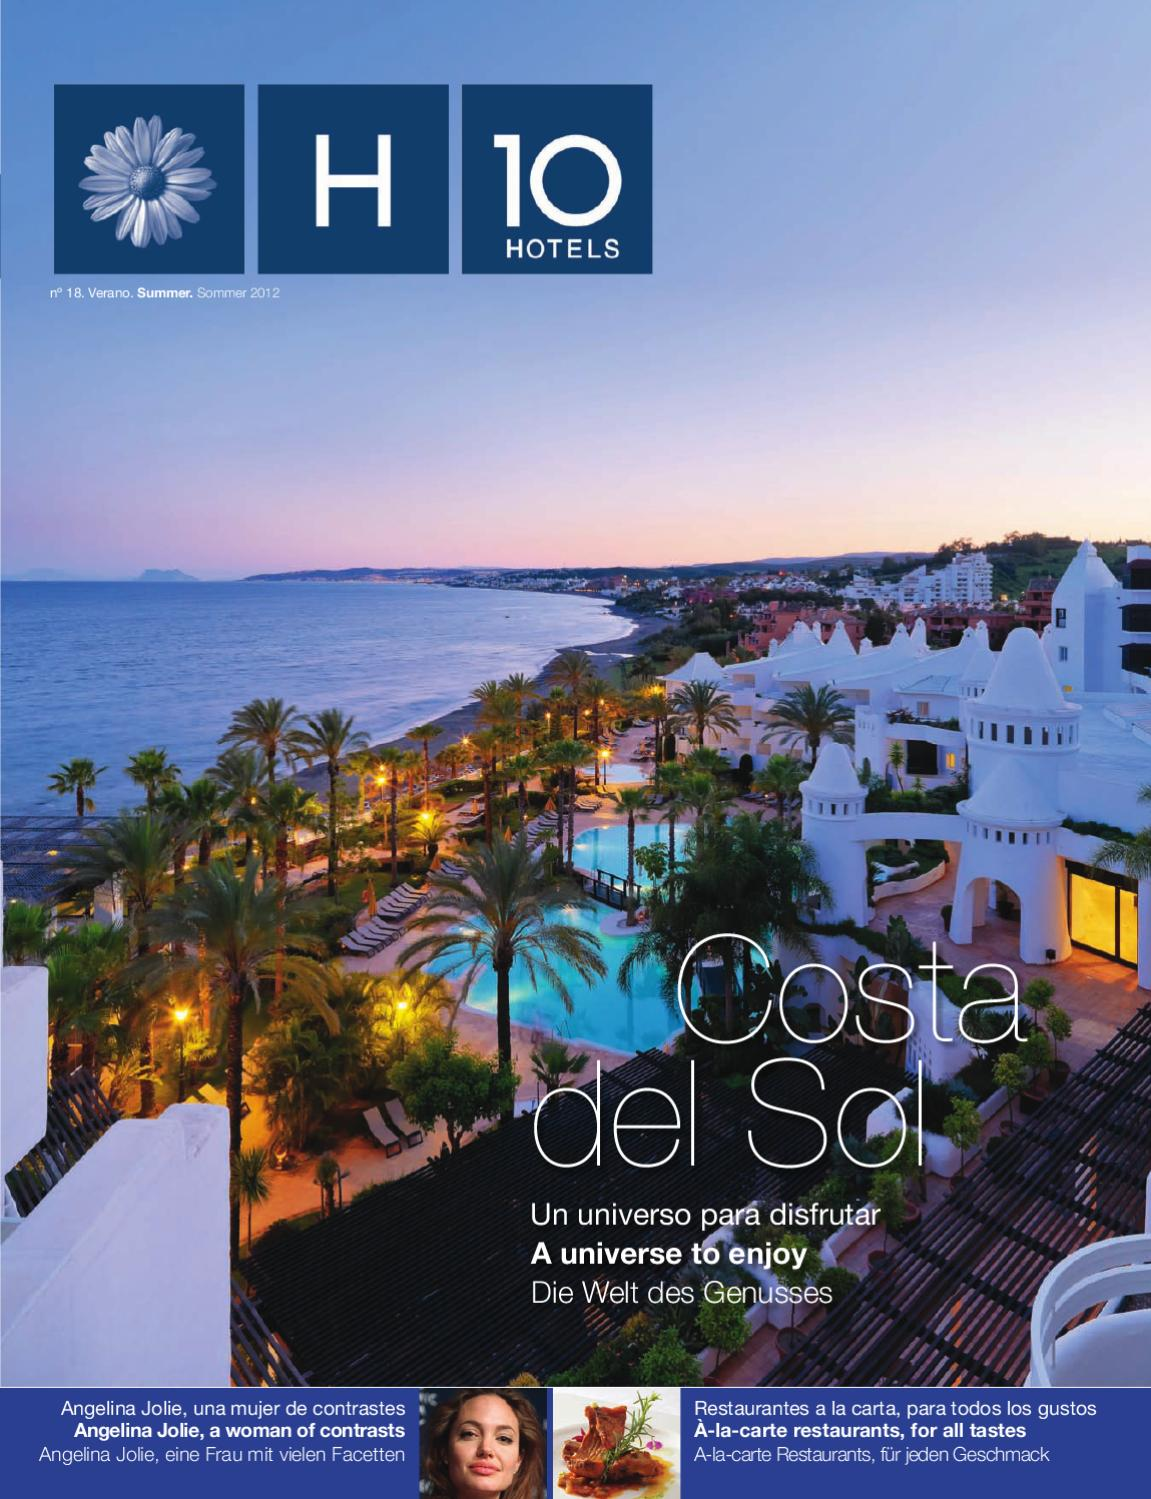 871fb8bc695e4 H10 Hotels Magazine. nº 18. Verano.Summer.Sommer 2012 by H10 Hotels - issuu